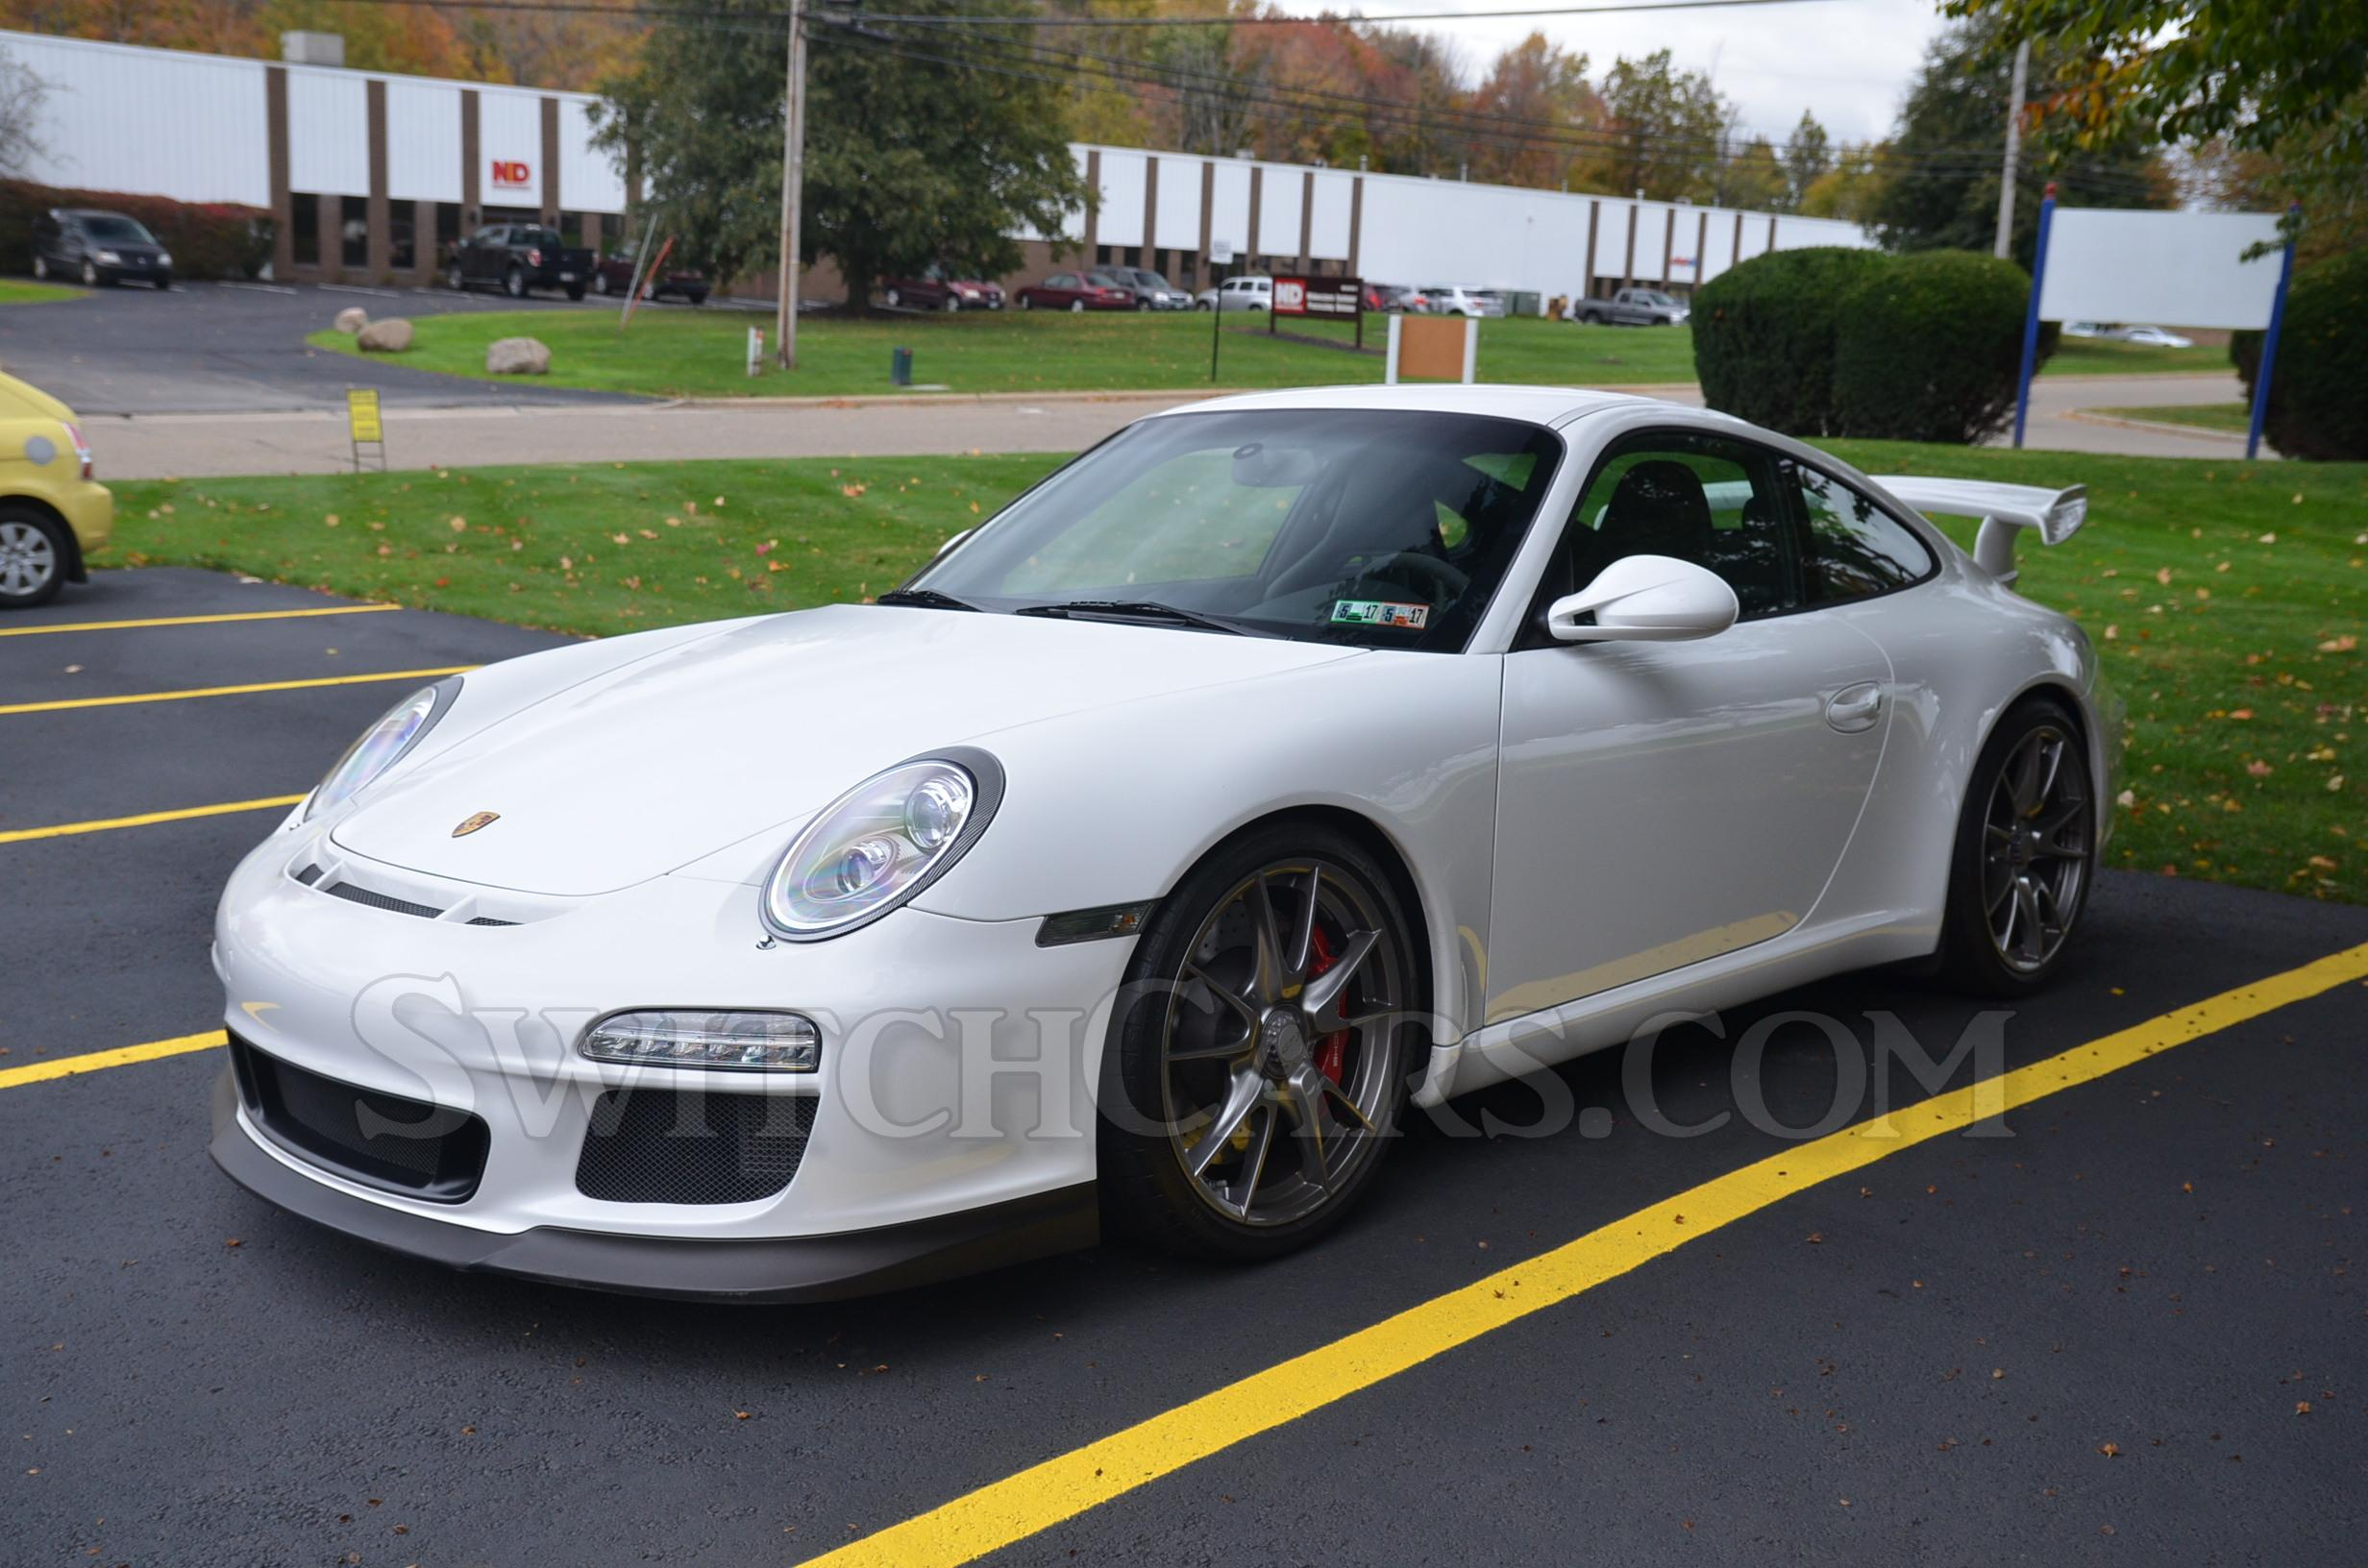 2010 Porsche 911 Gt3 At Switchcars Inc Sold